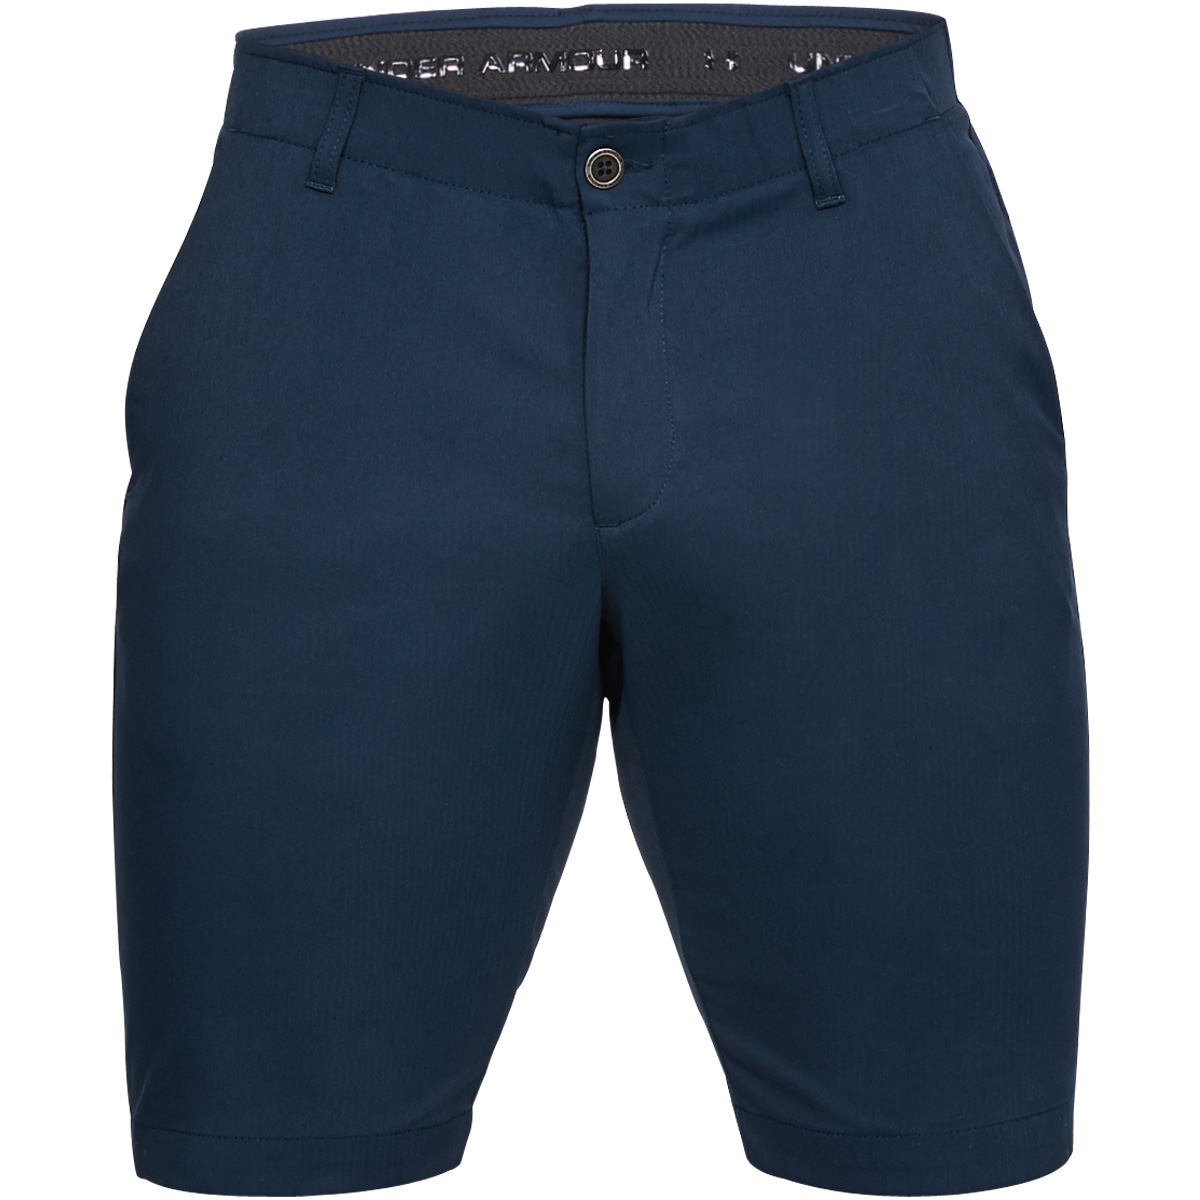 Under-Armour-Mens-Takeover-Taper-Mid-Length-Golf-Shorts-42-OFF-RRP thumbnail 4